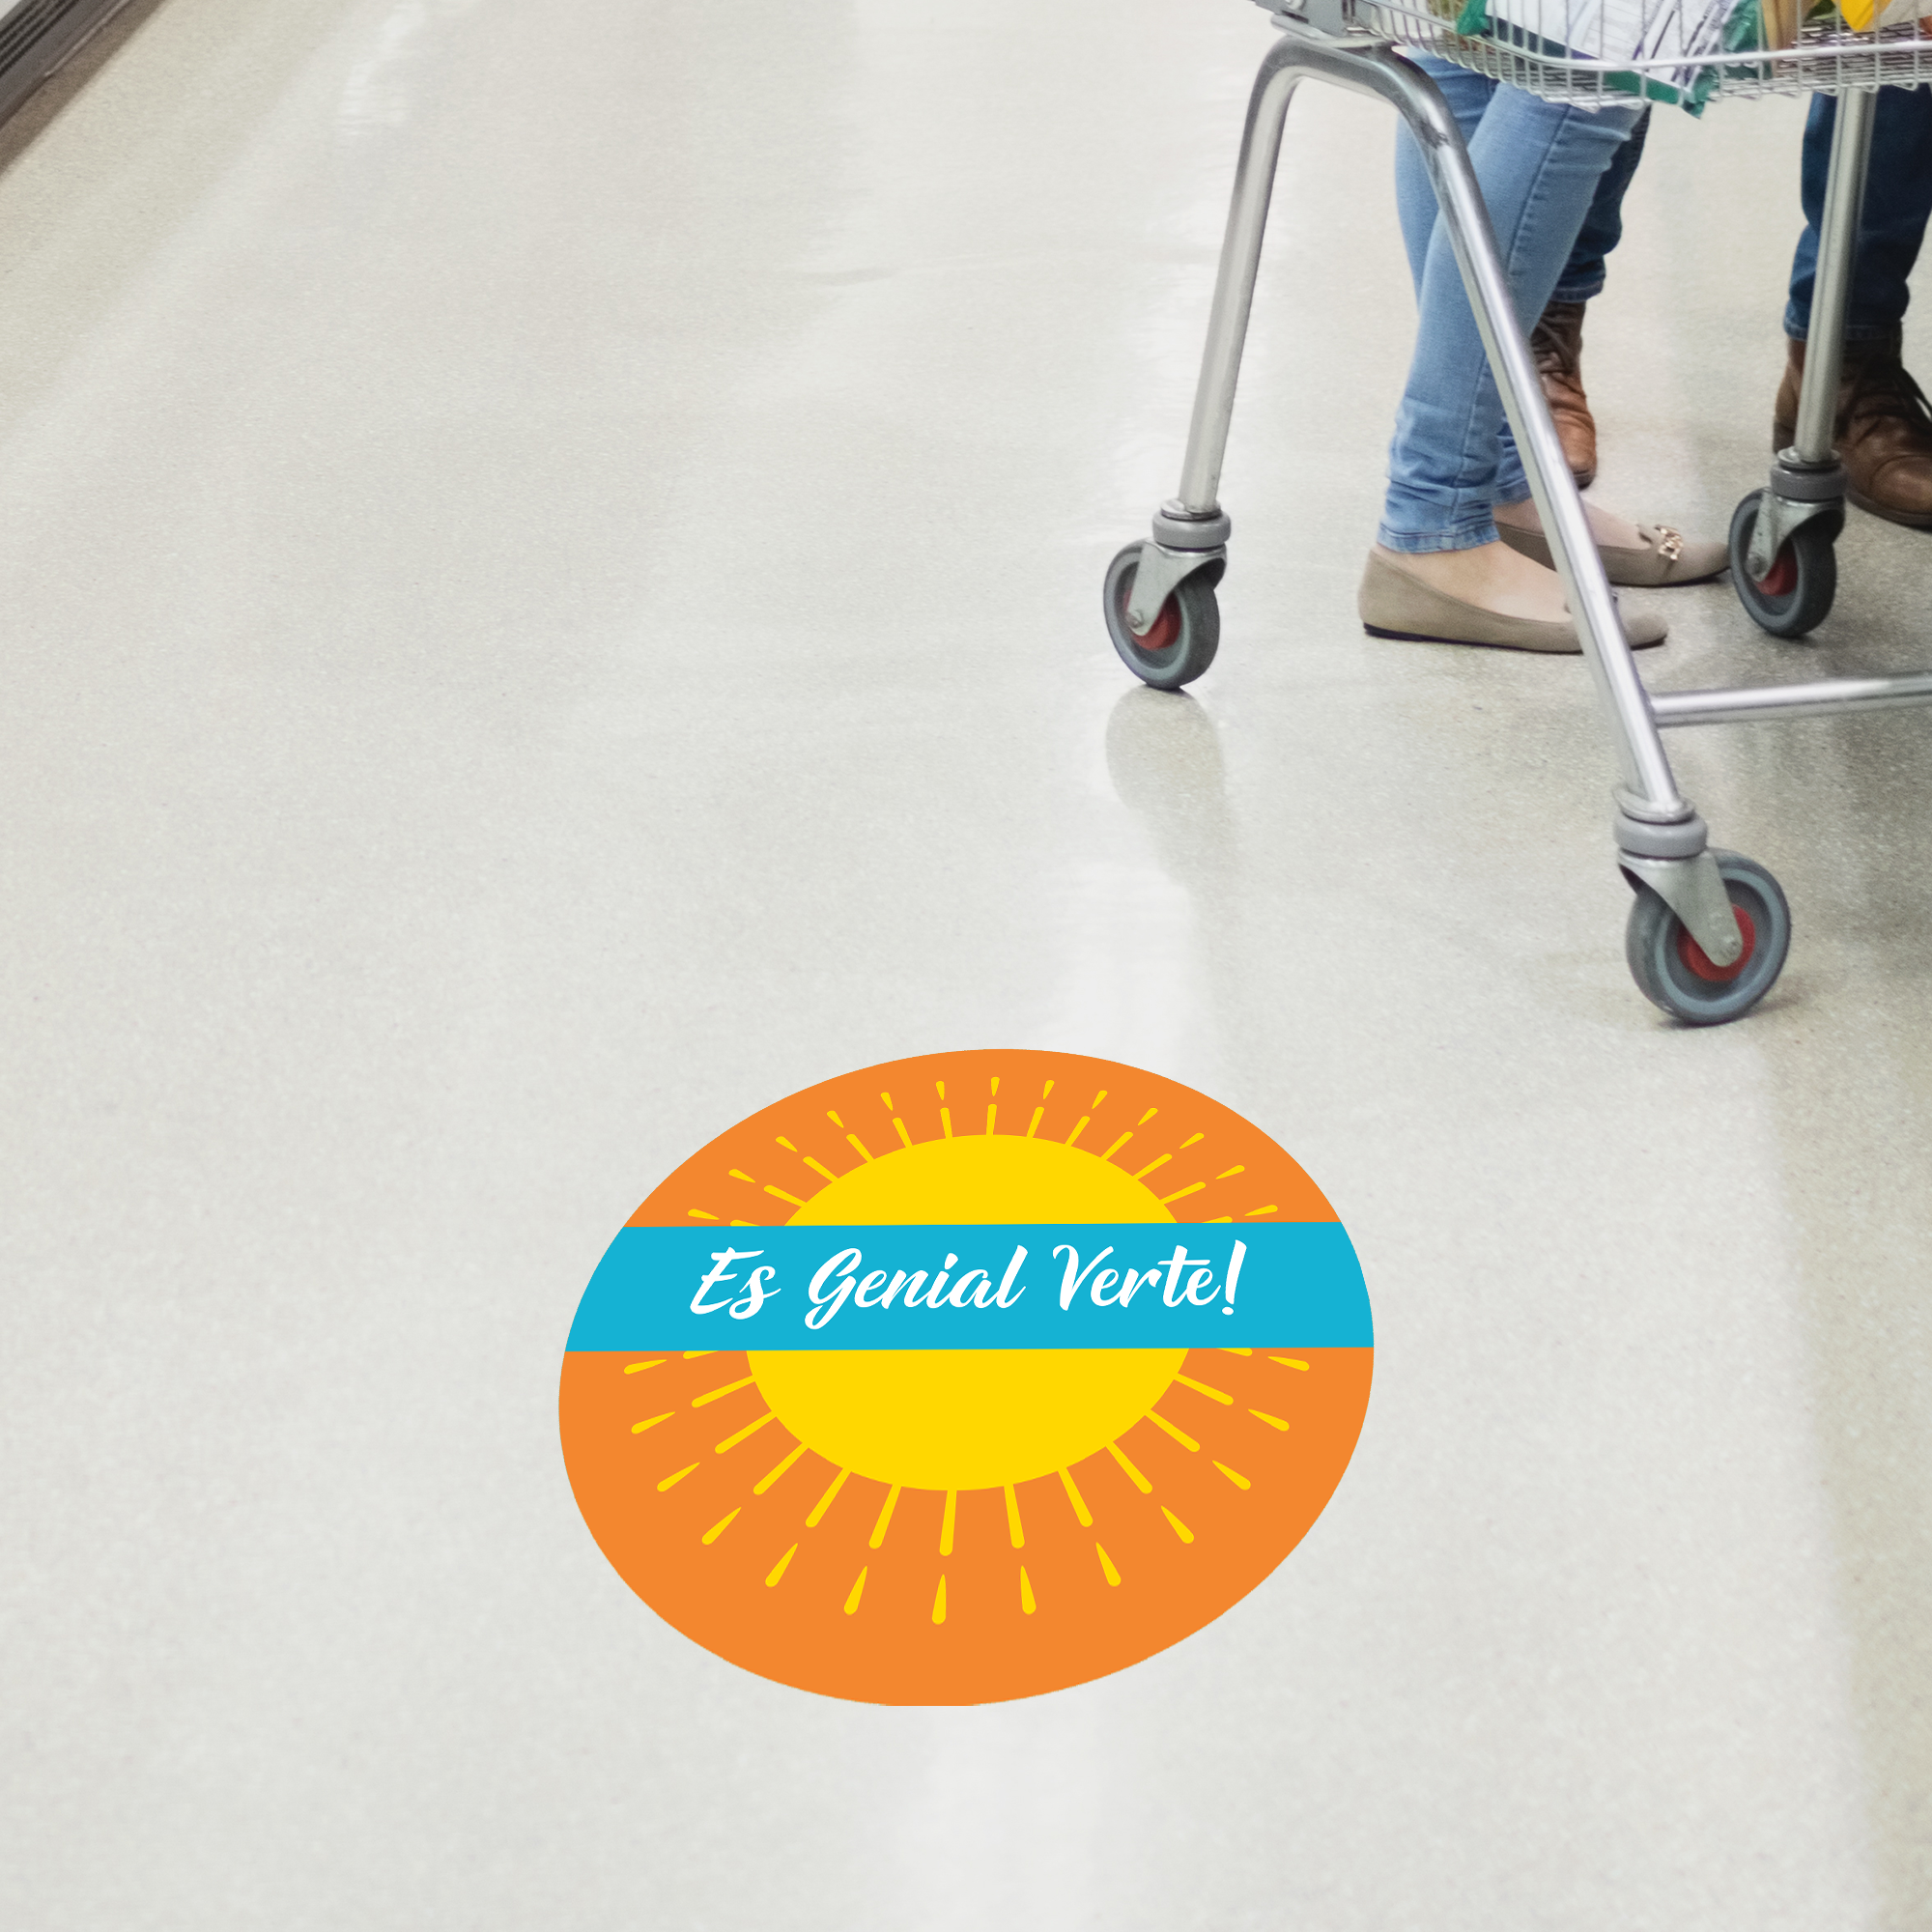 It's Great to See You Spanish Set Business Reopening Floor Decal